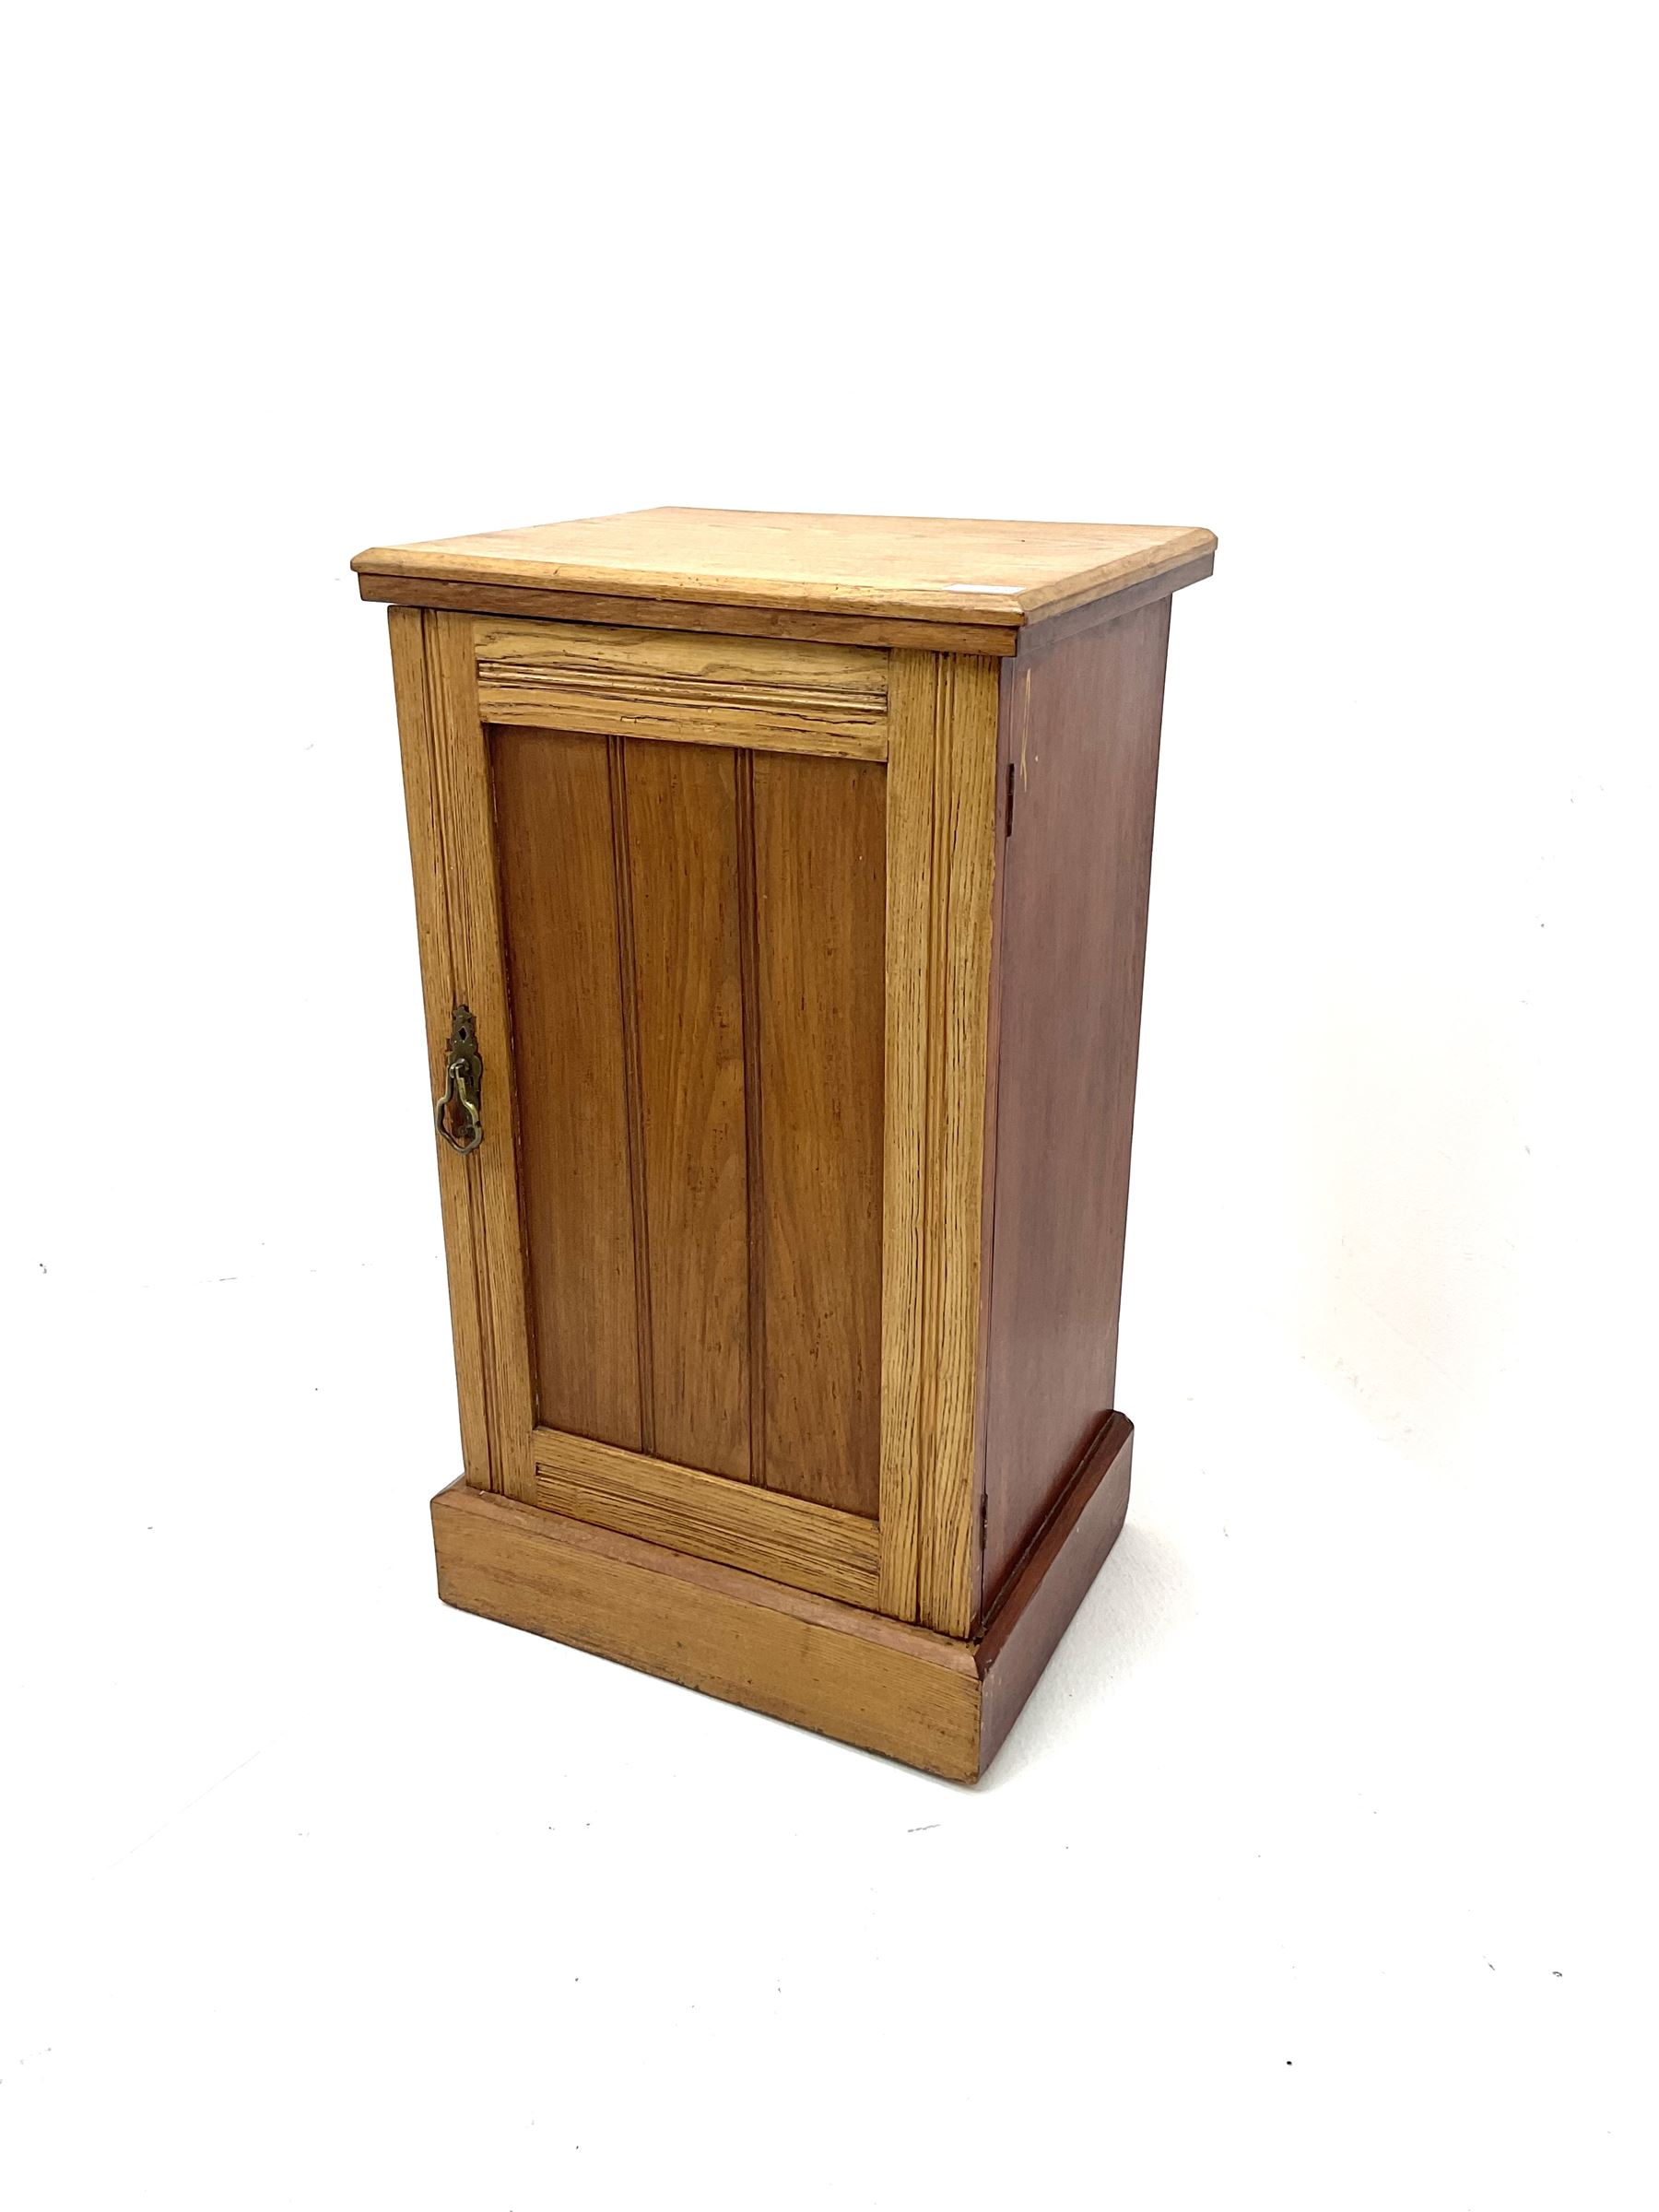 Early 20th century elm bedside cabinet